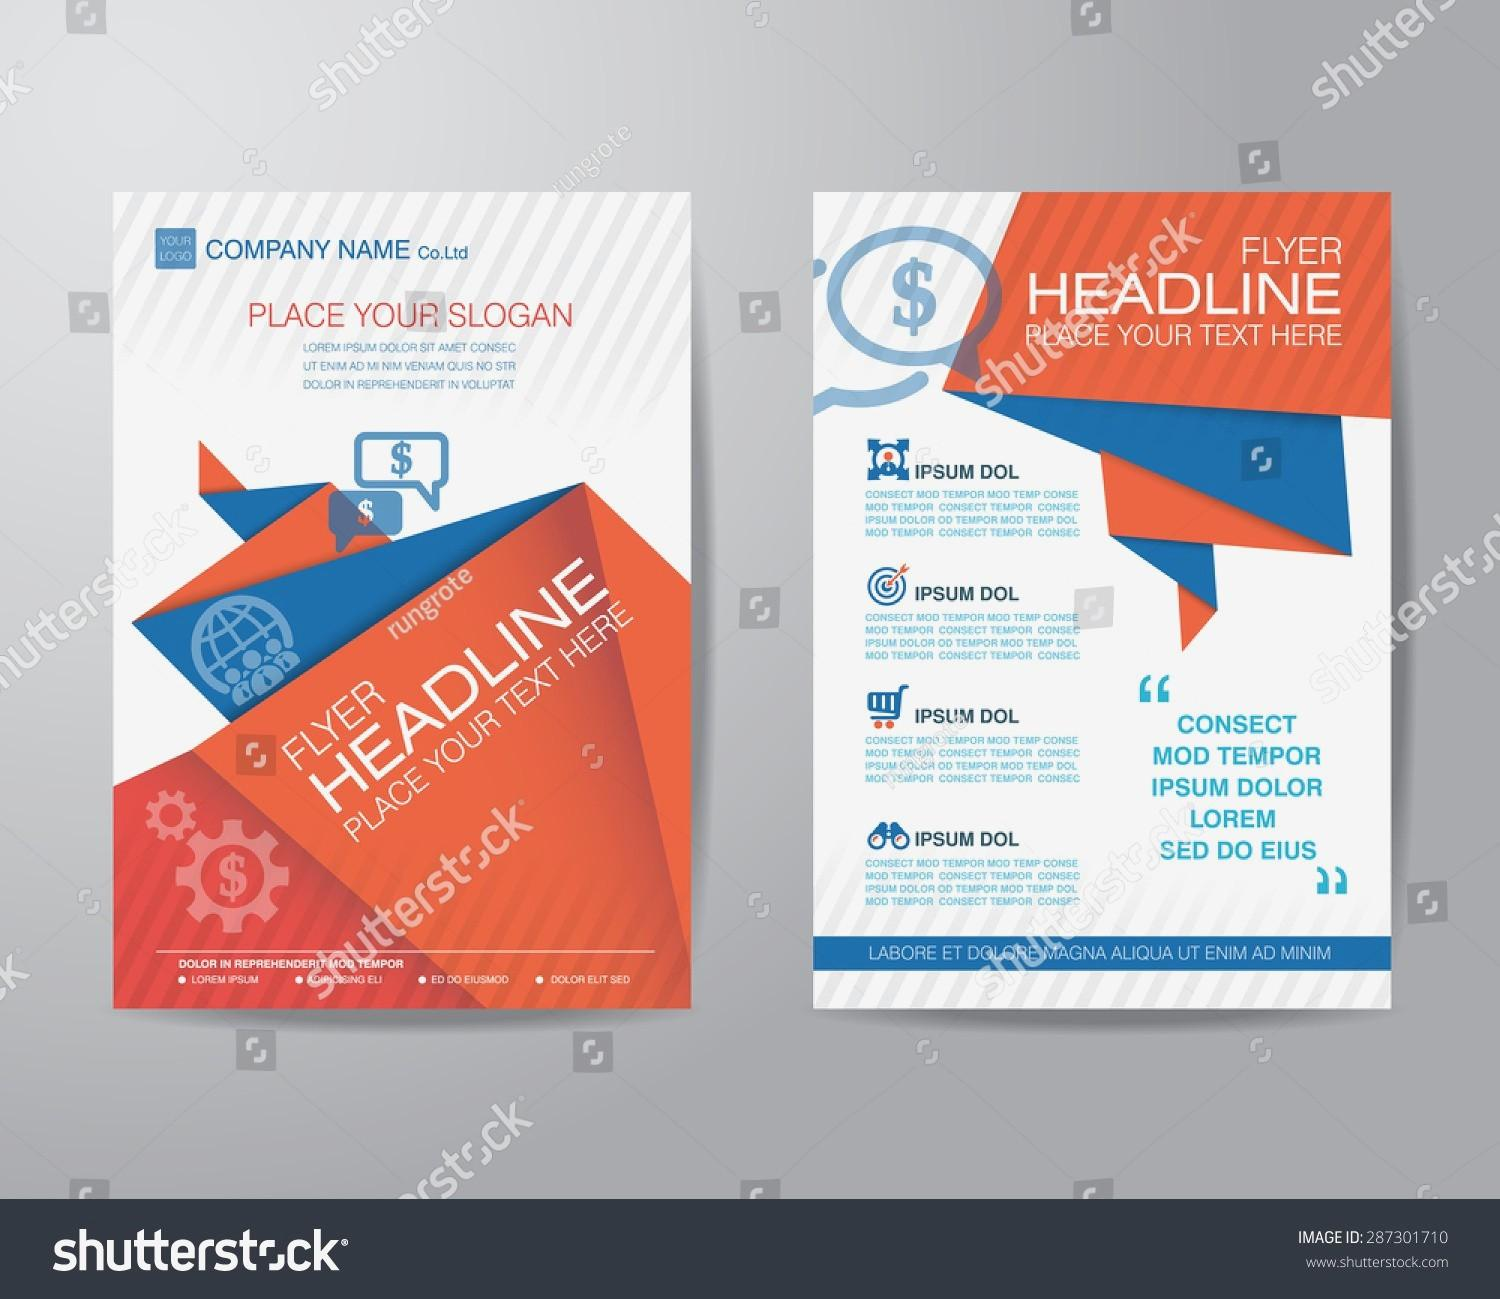 Free Business Flyer Templates Online